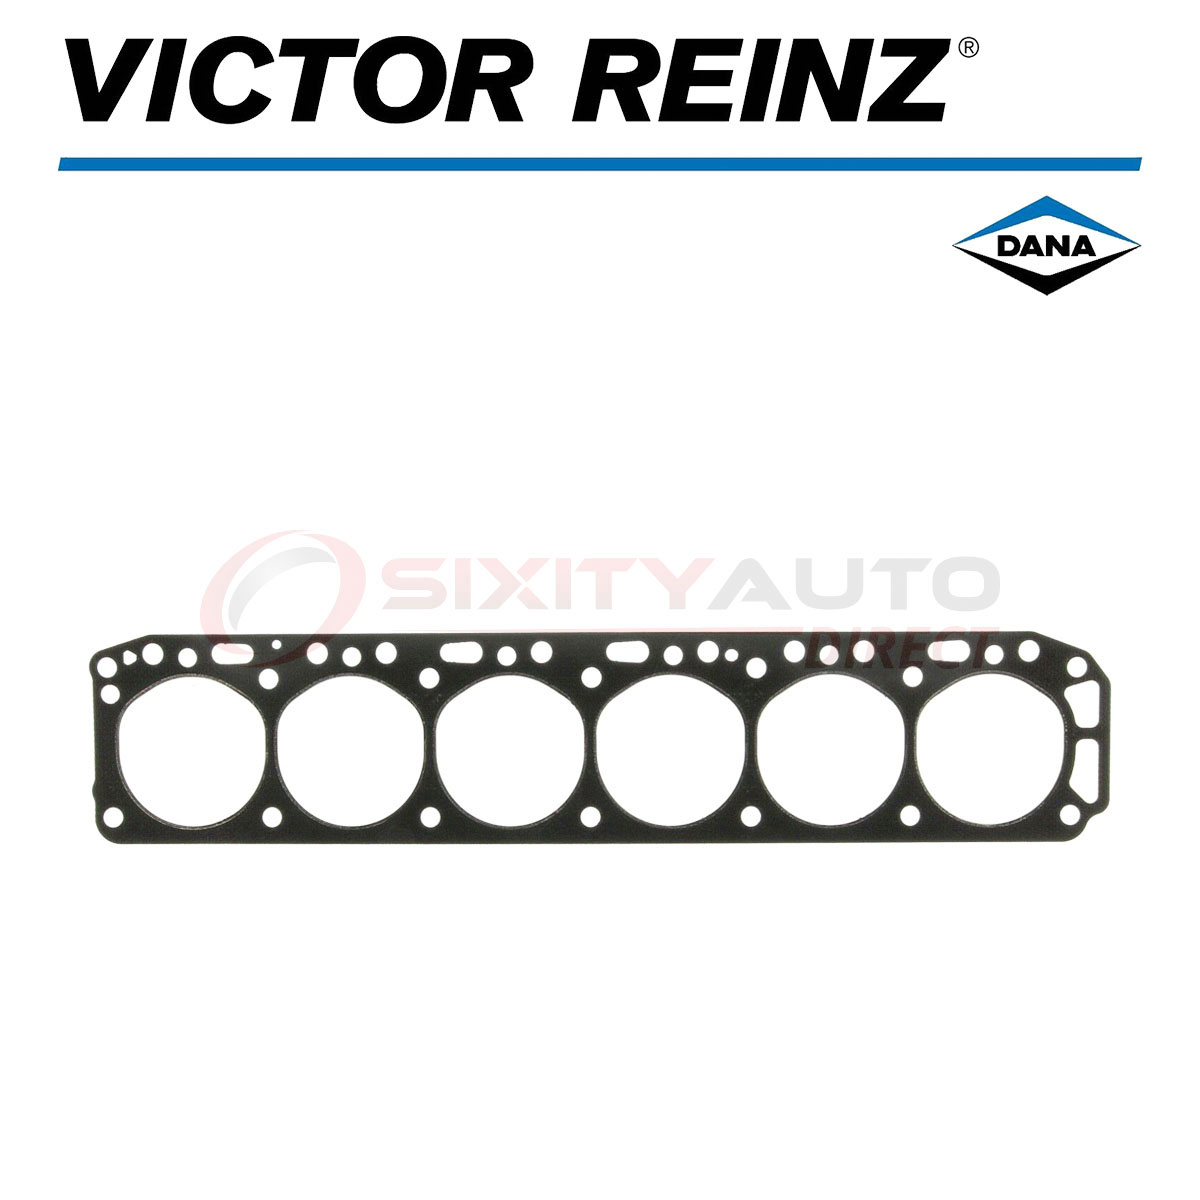 Victor Reinz Cylinder Head Gasket For Chevrolet K20 4